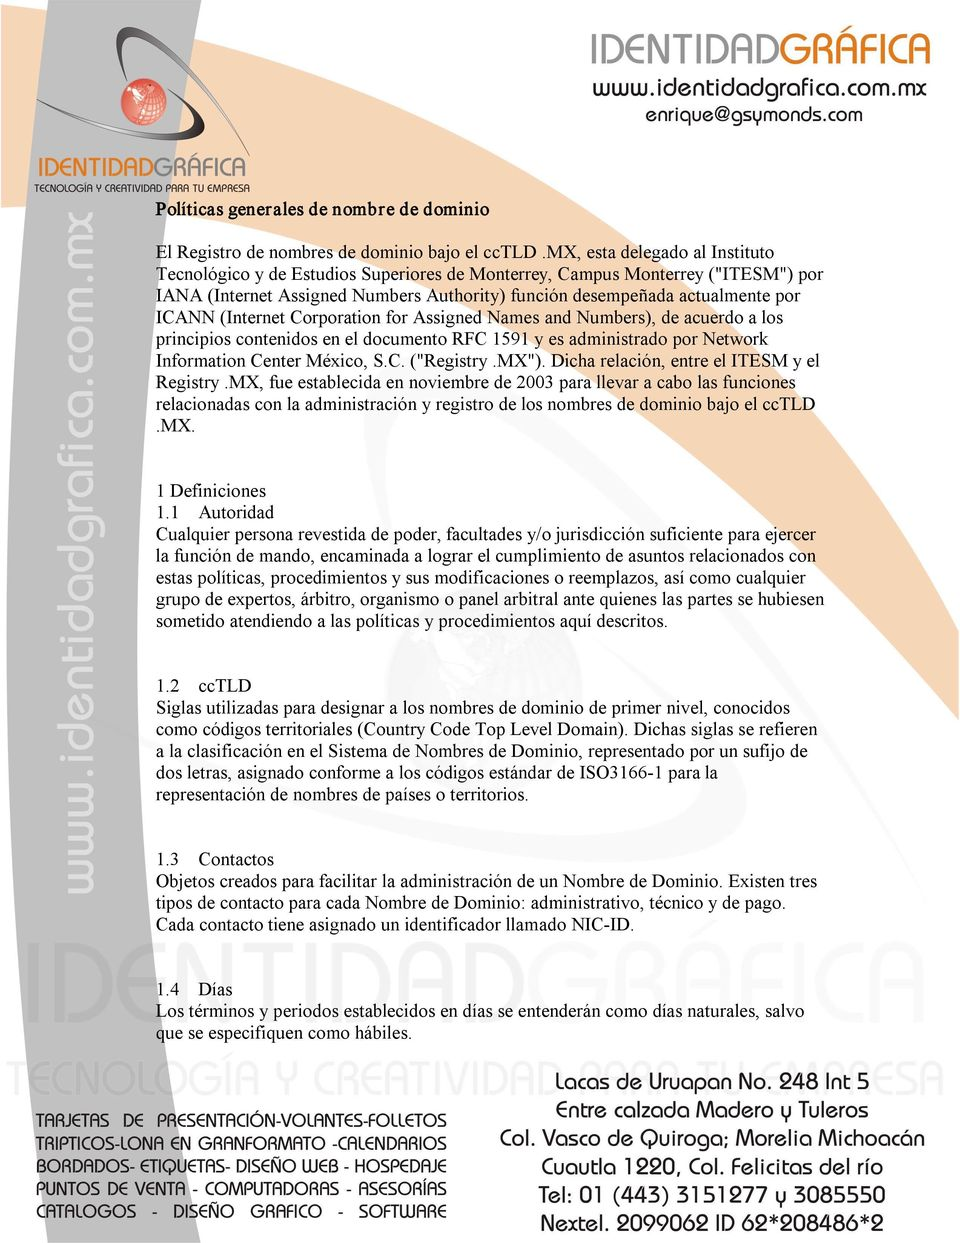 "(Internet Corporation for Assigned Names and Numbers), de acuerdo a los principios contenidos en el documento RFC 1591 y es administrado por Network Information Center México, S.C. (""Registry.MX"")."